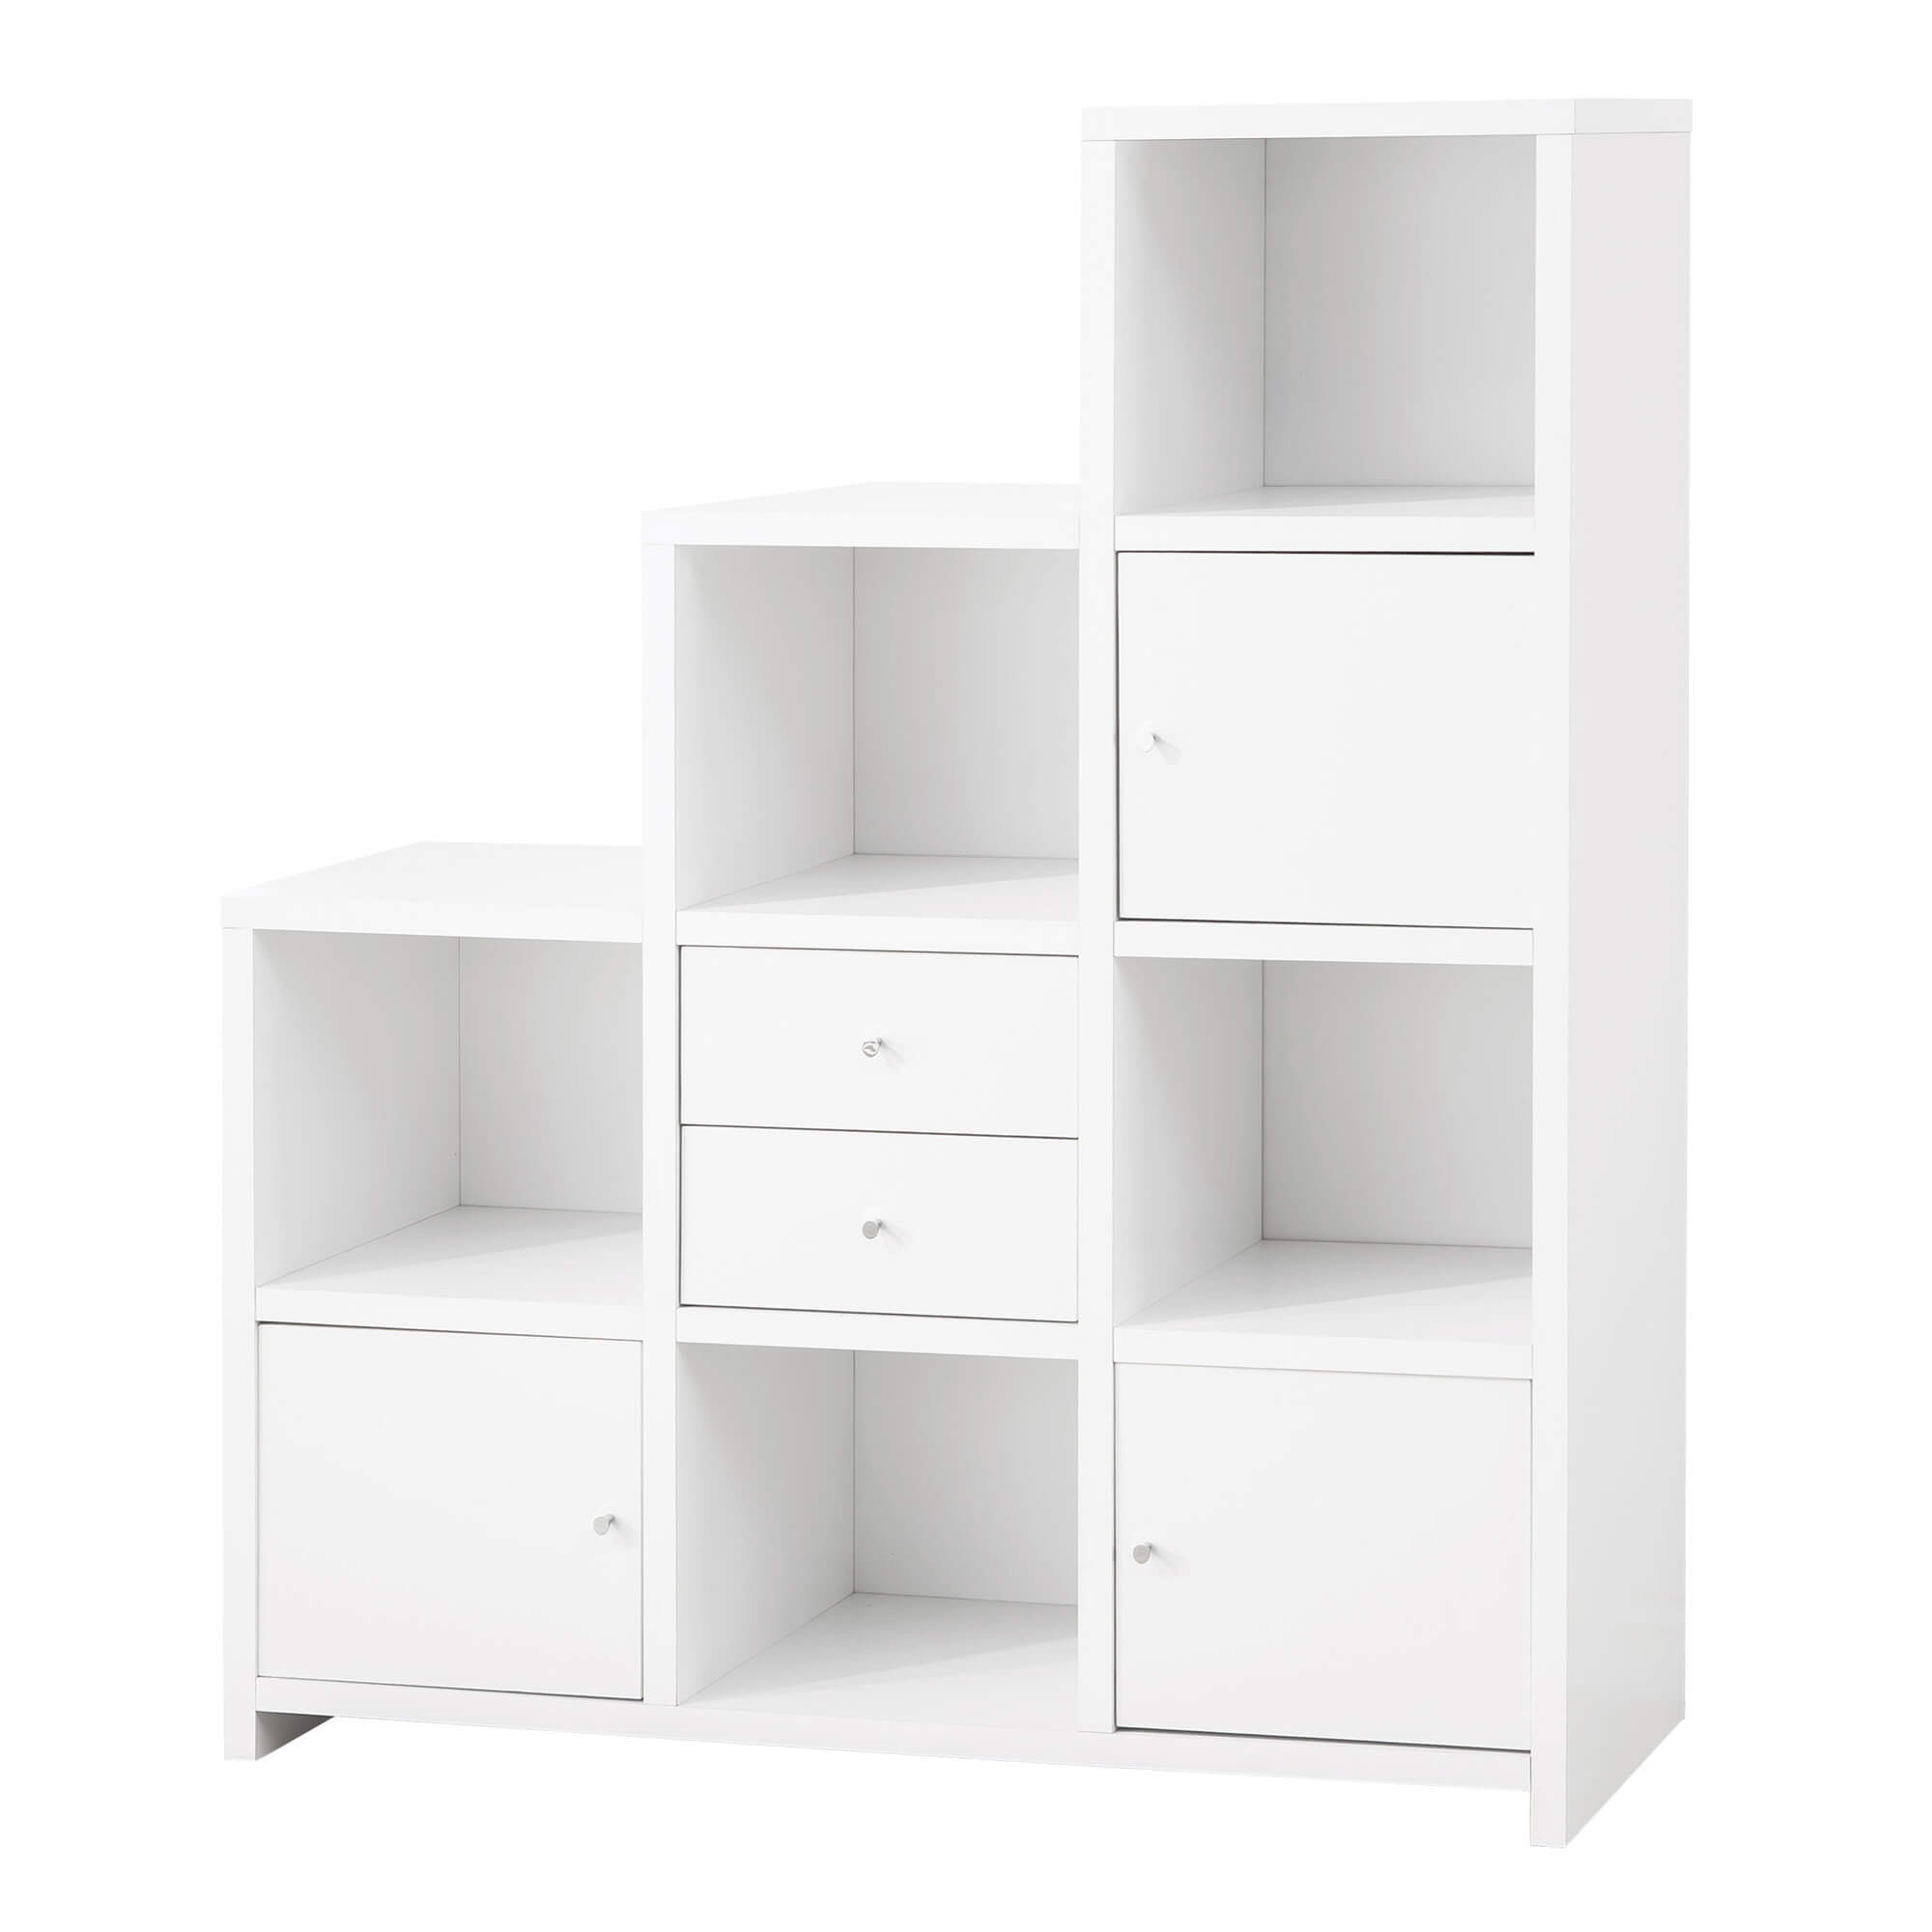 nz doors bookshelf of walmart in as well conjunction size white drawers glass full with amazon